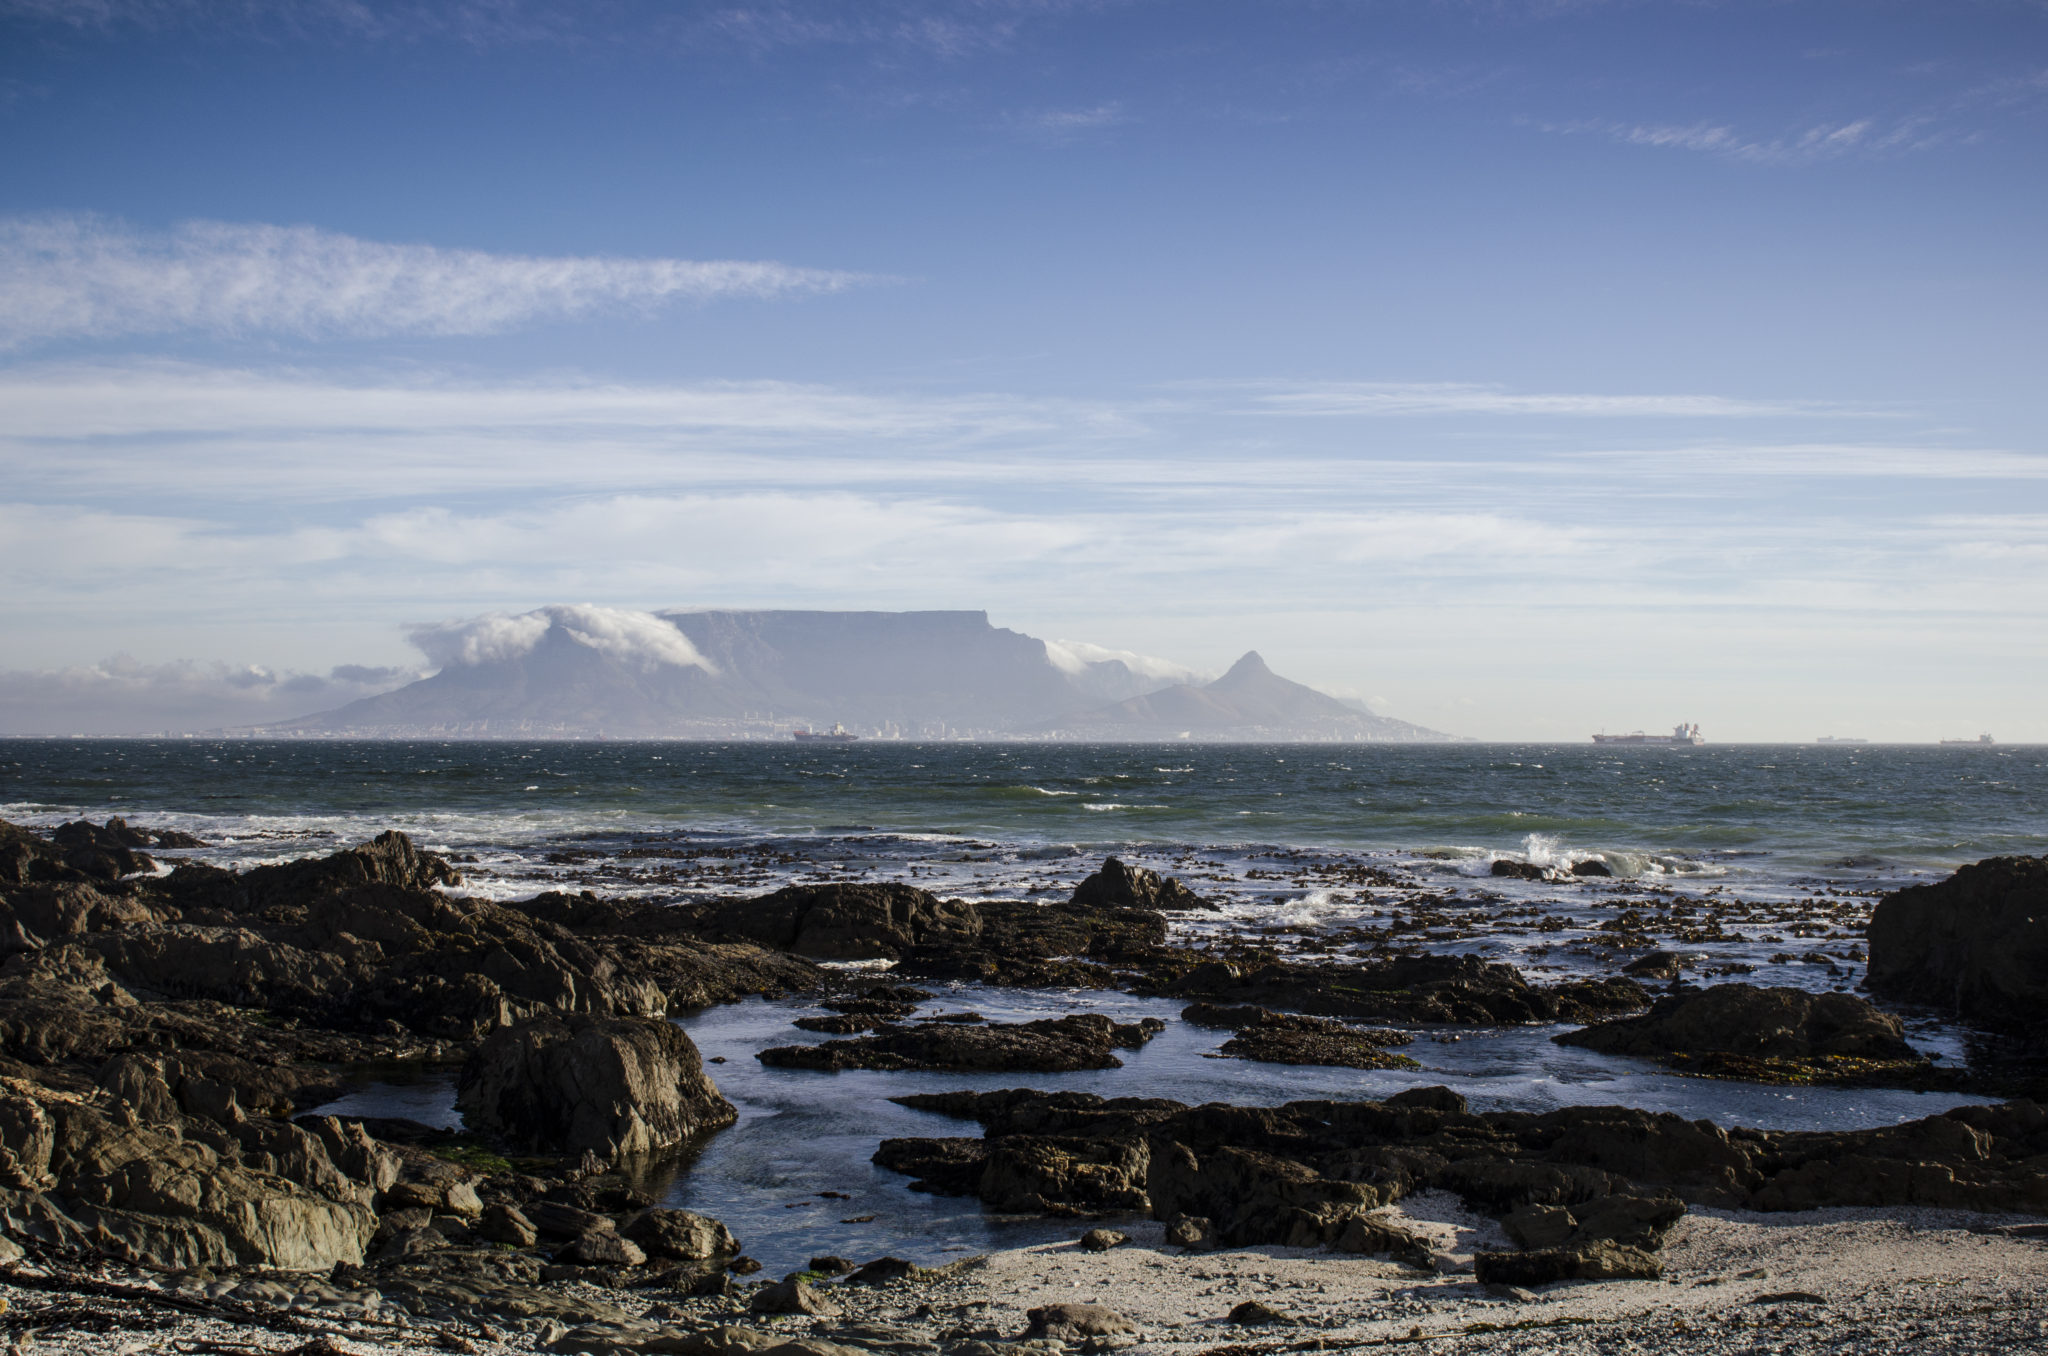 Things-to-do-in-South-Africa-Table-Mountain-View-Bloubergstrand